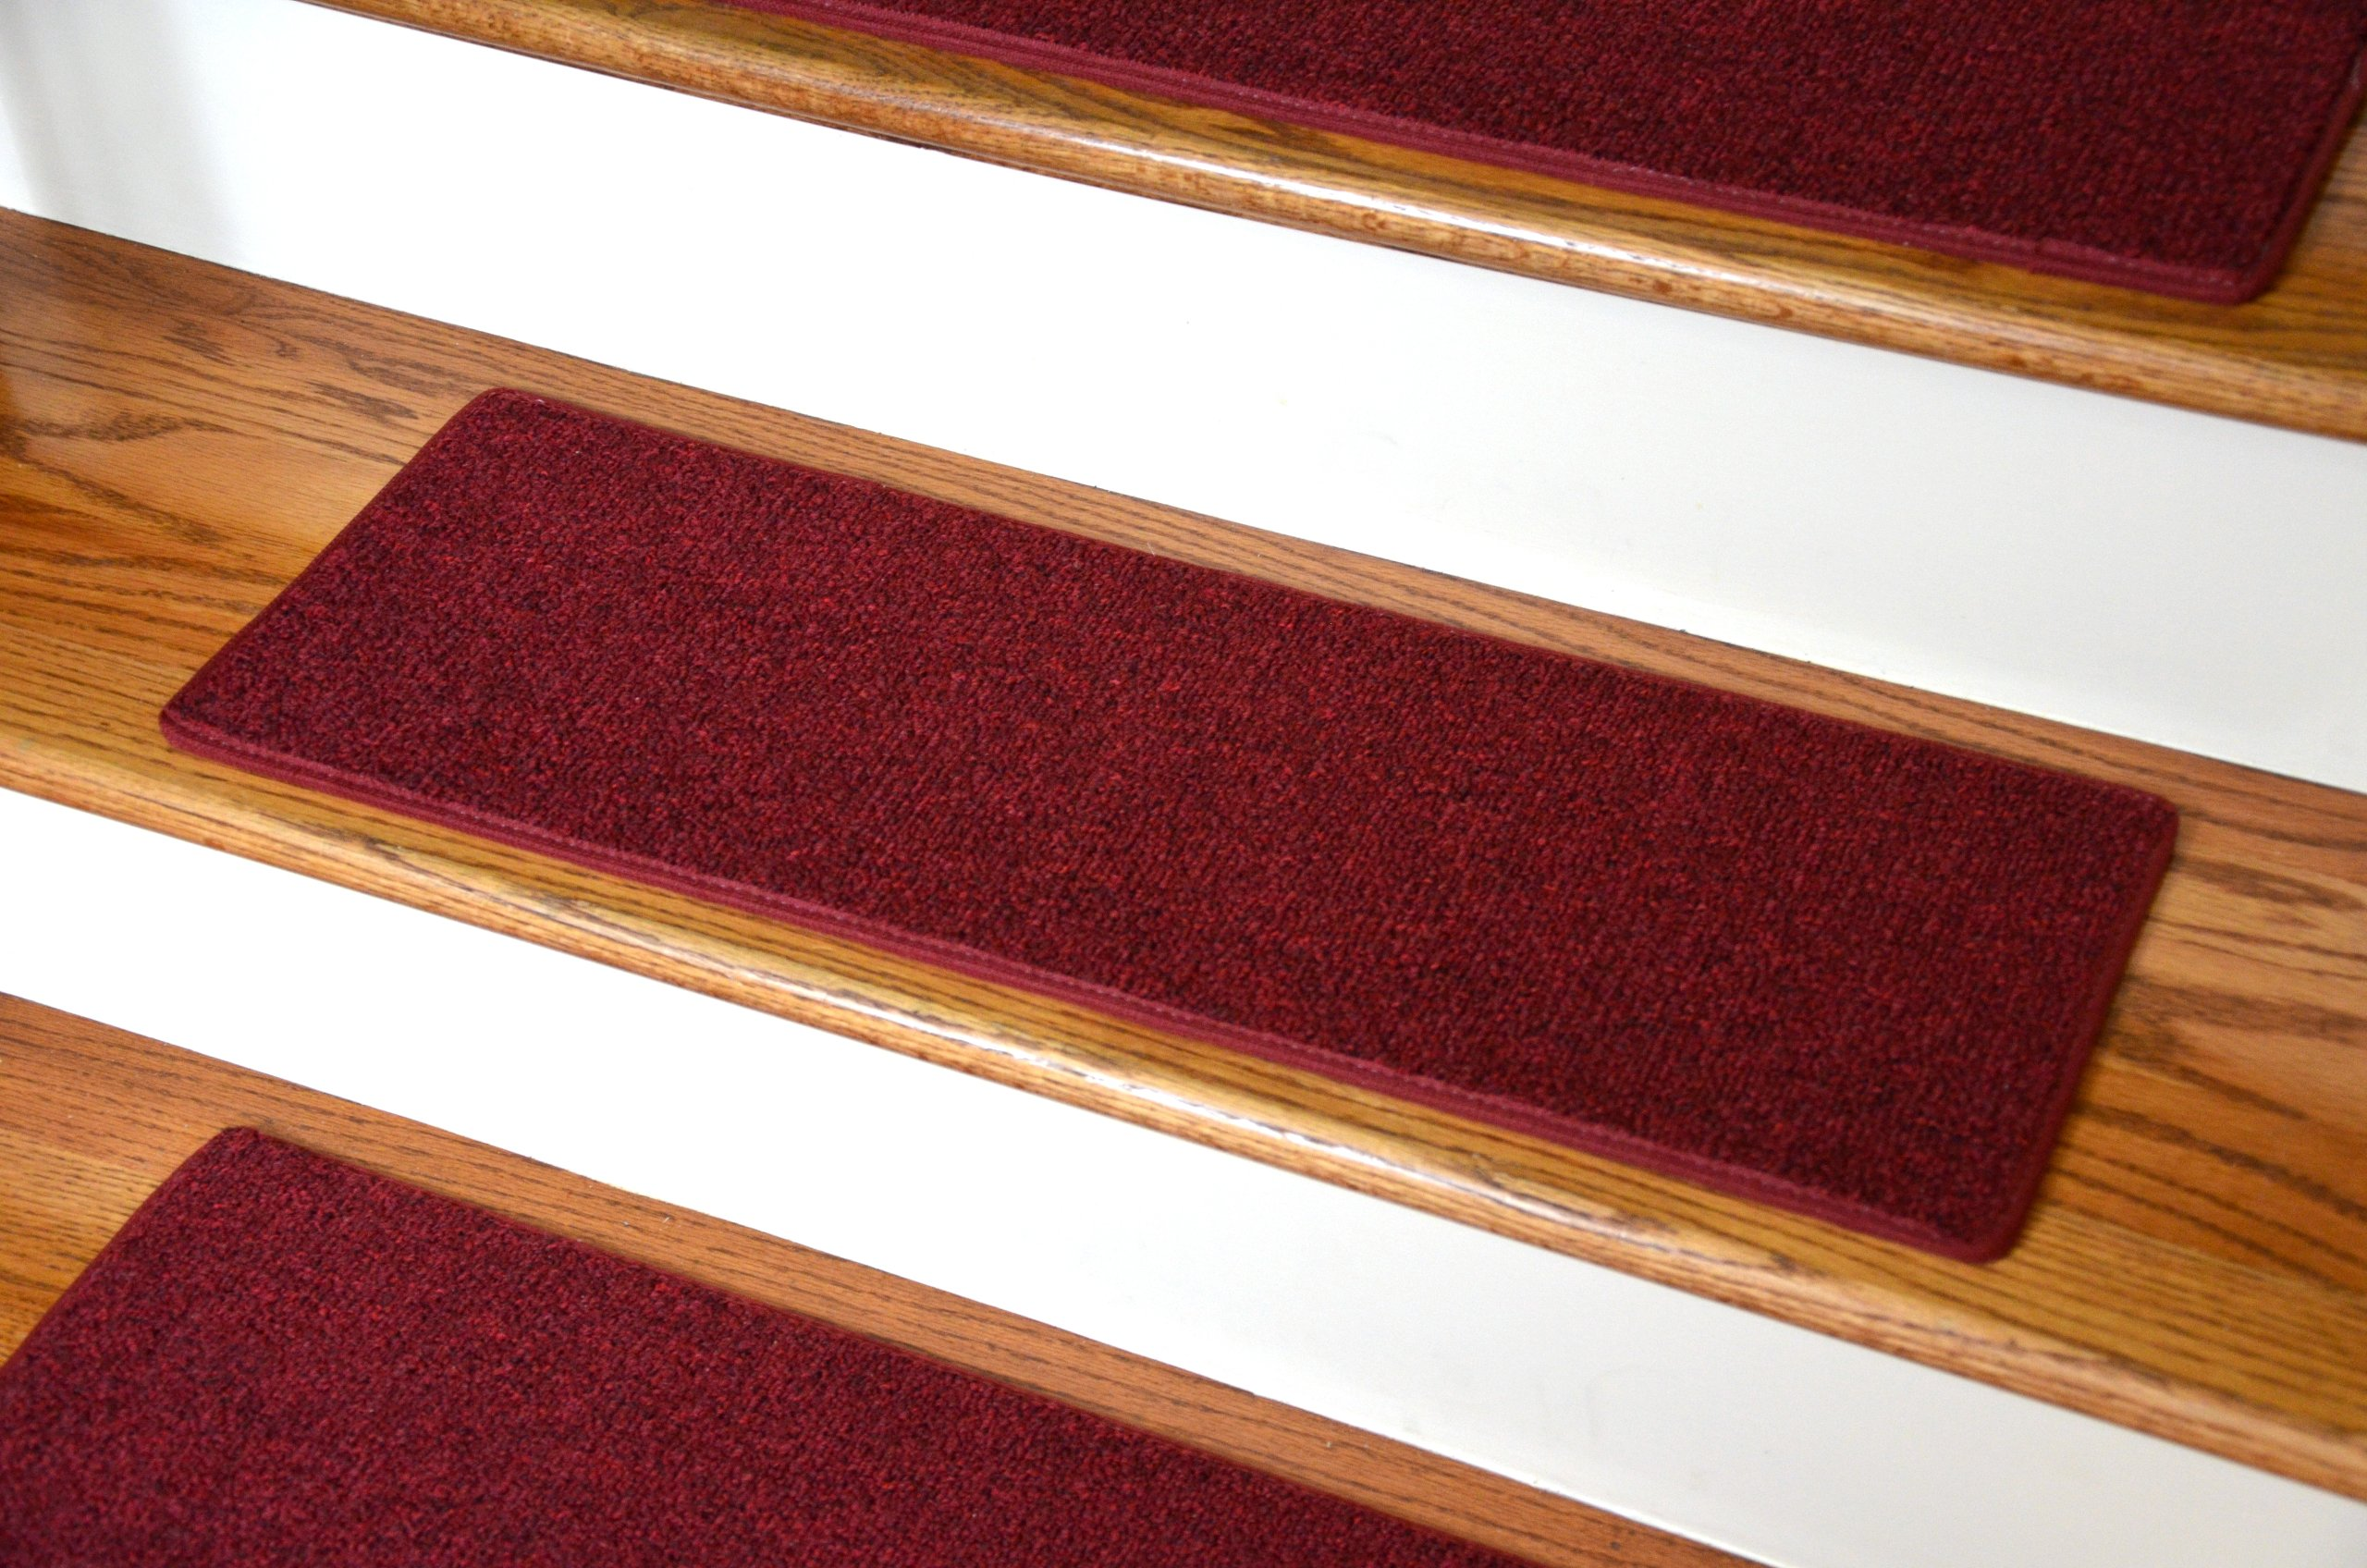 Dean Non-Slip Tape Free Pet Friendly DIY Carpet Stair Treads/Rugs 27'' x 9'' (15) - Color: Red by Dean Flooring Company